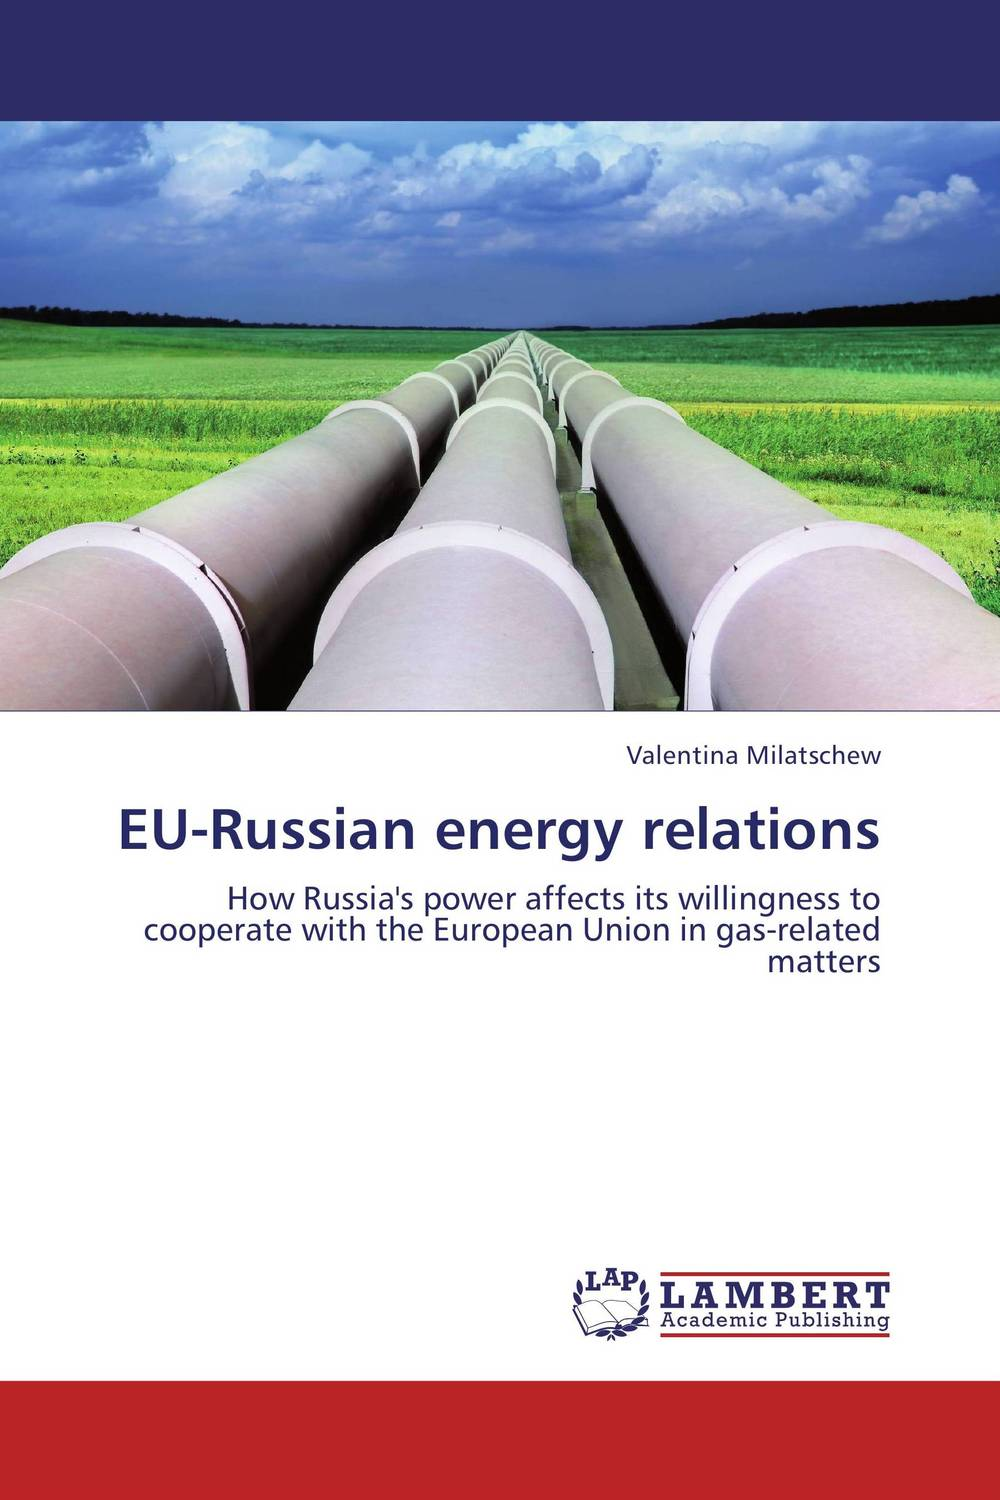 EU-Russian energy relations dick francis felix francis silks